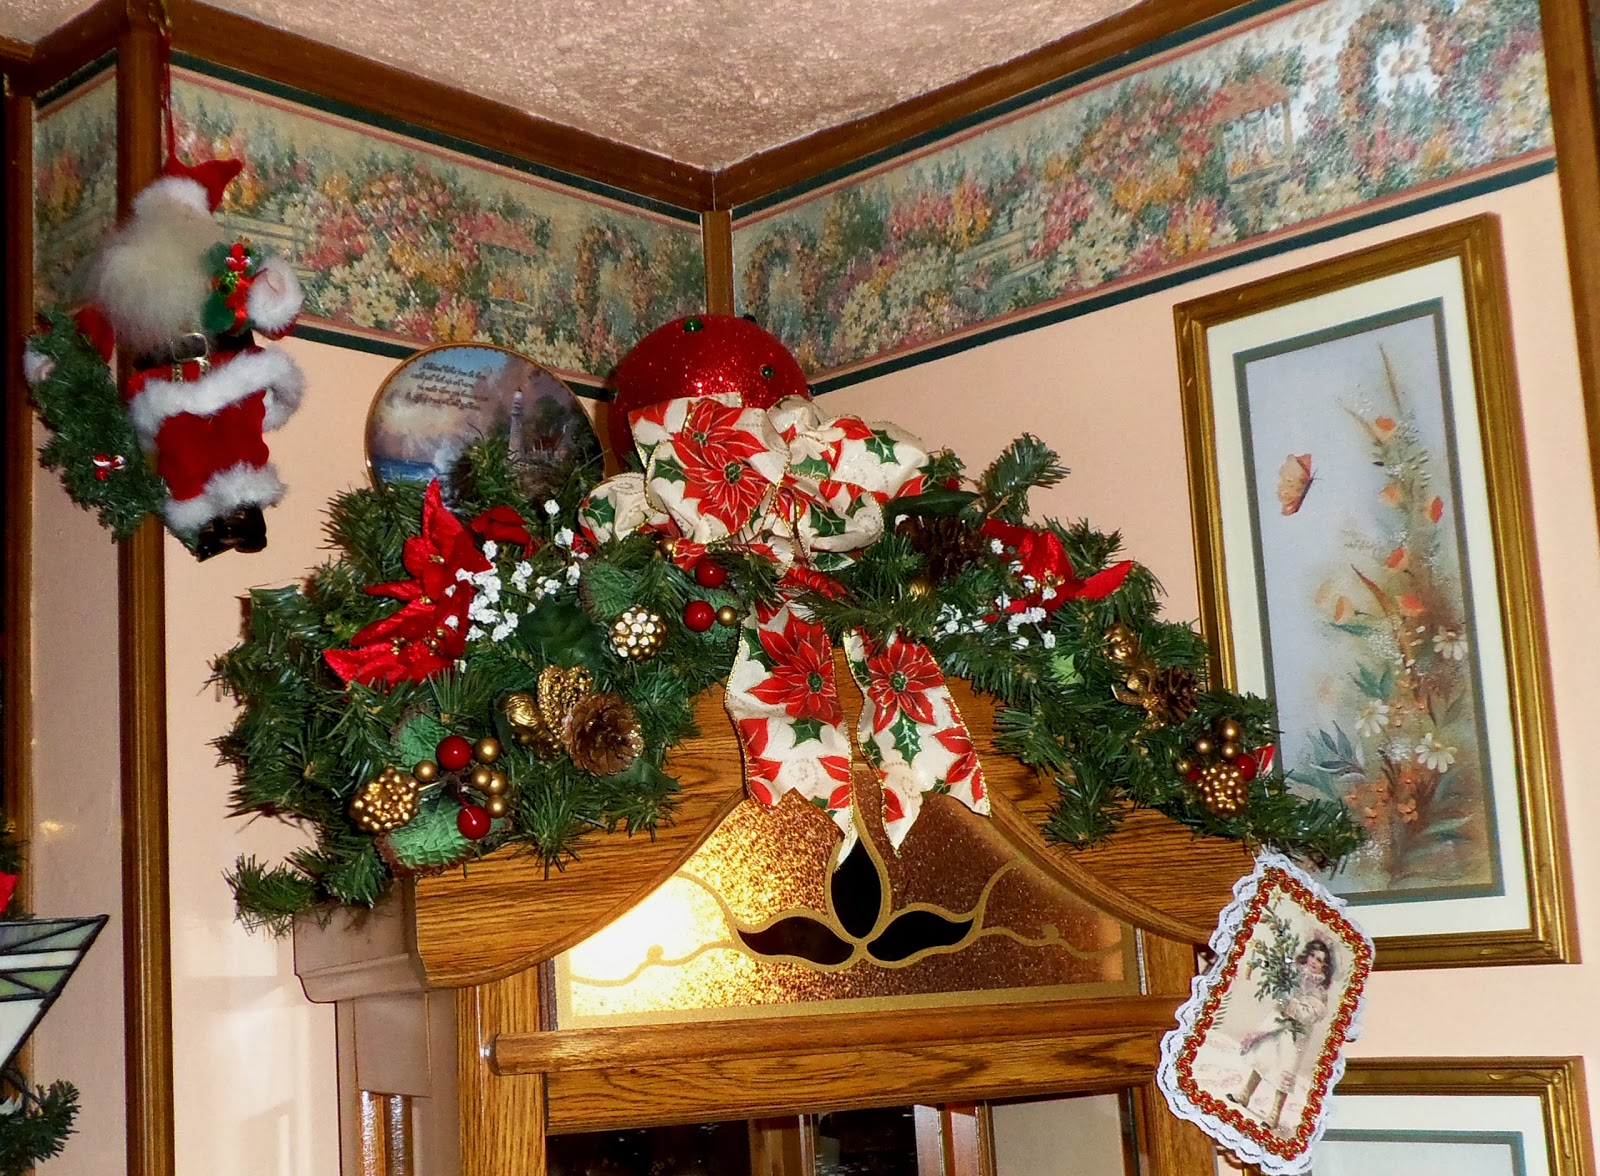 A DEBBIE-DABBLE CHRISTMAS: 2013 Christmas Home Tour, Part 2, An Old Fashioned Christmas in the ...